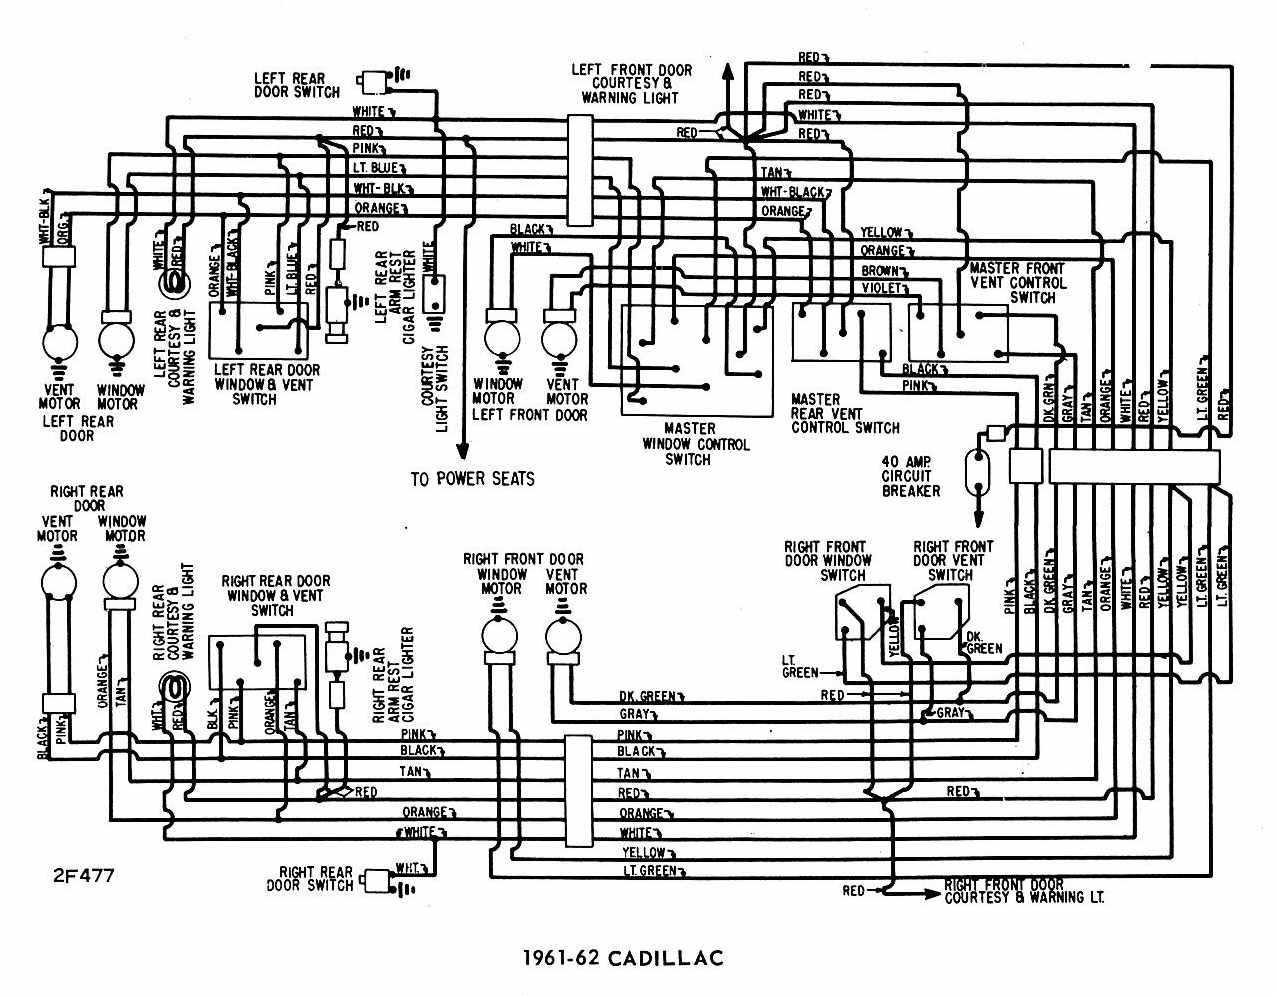 windows wiring diagram of 1961 62 cadillac?t=1508149295 cadillac car manuals, wiring diagrams pdf & fault codes 2003 Cadillac DeVille Fuse Box Diagram at edmiracle.co